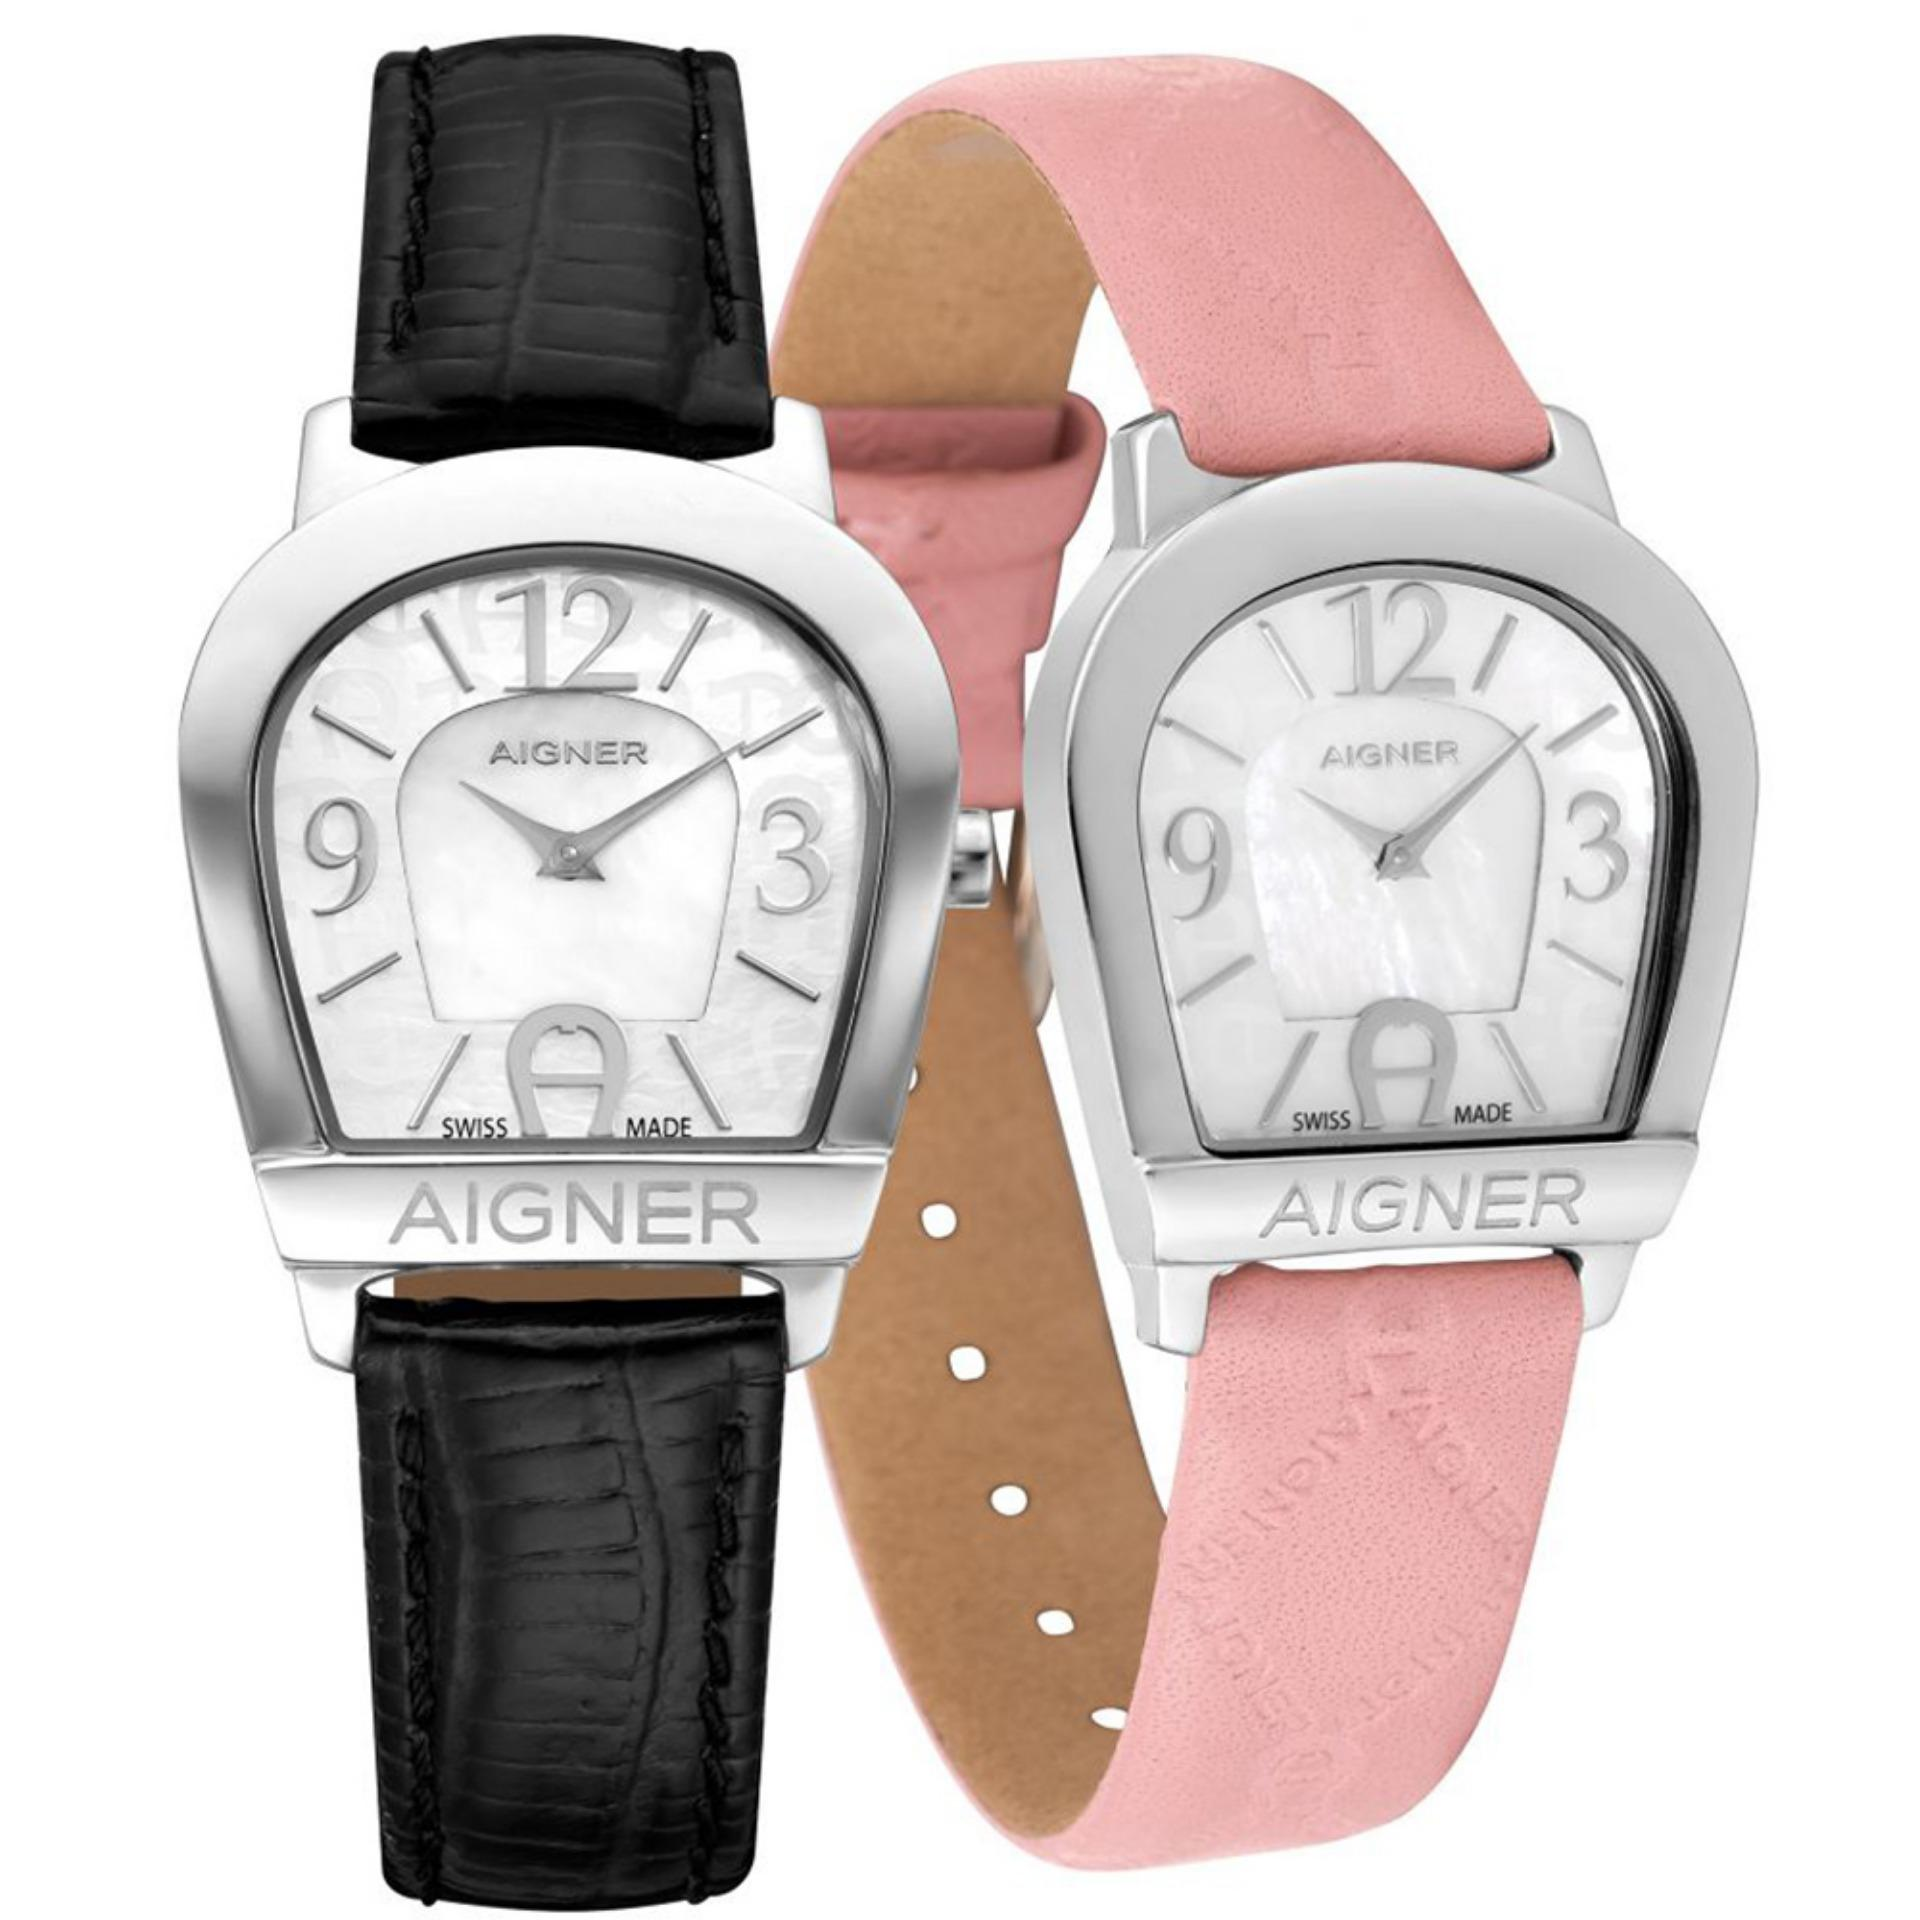 Aigner A40239 Messina Jam Tangan Wanita Leather Red Gold Daftar A24204a Chieti Biru Silver A32268b Amalfi Ii Black